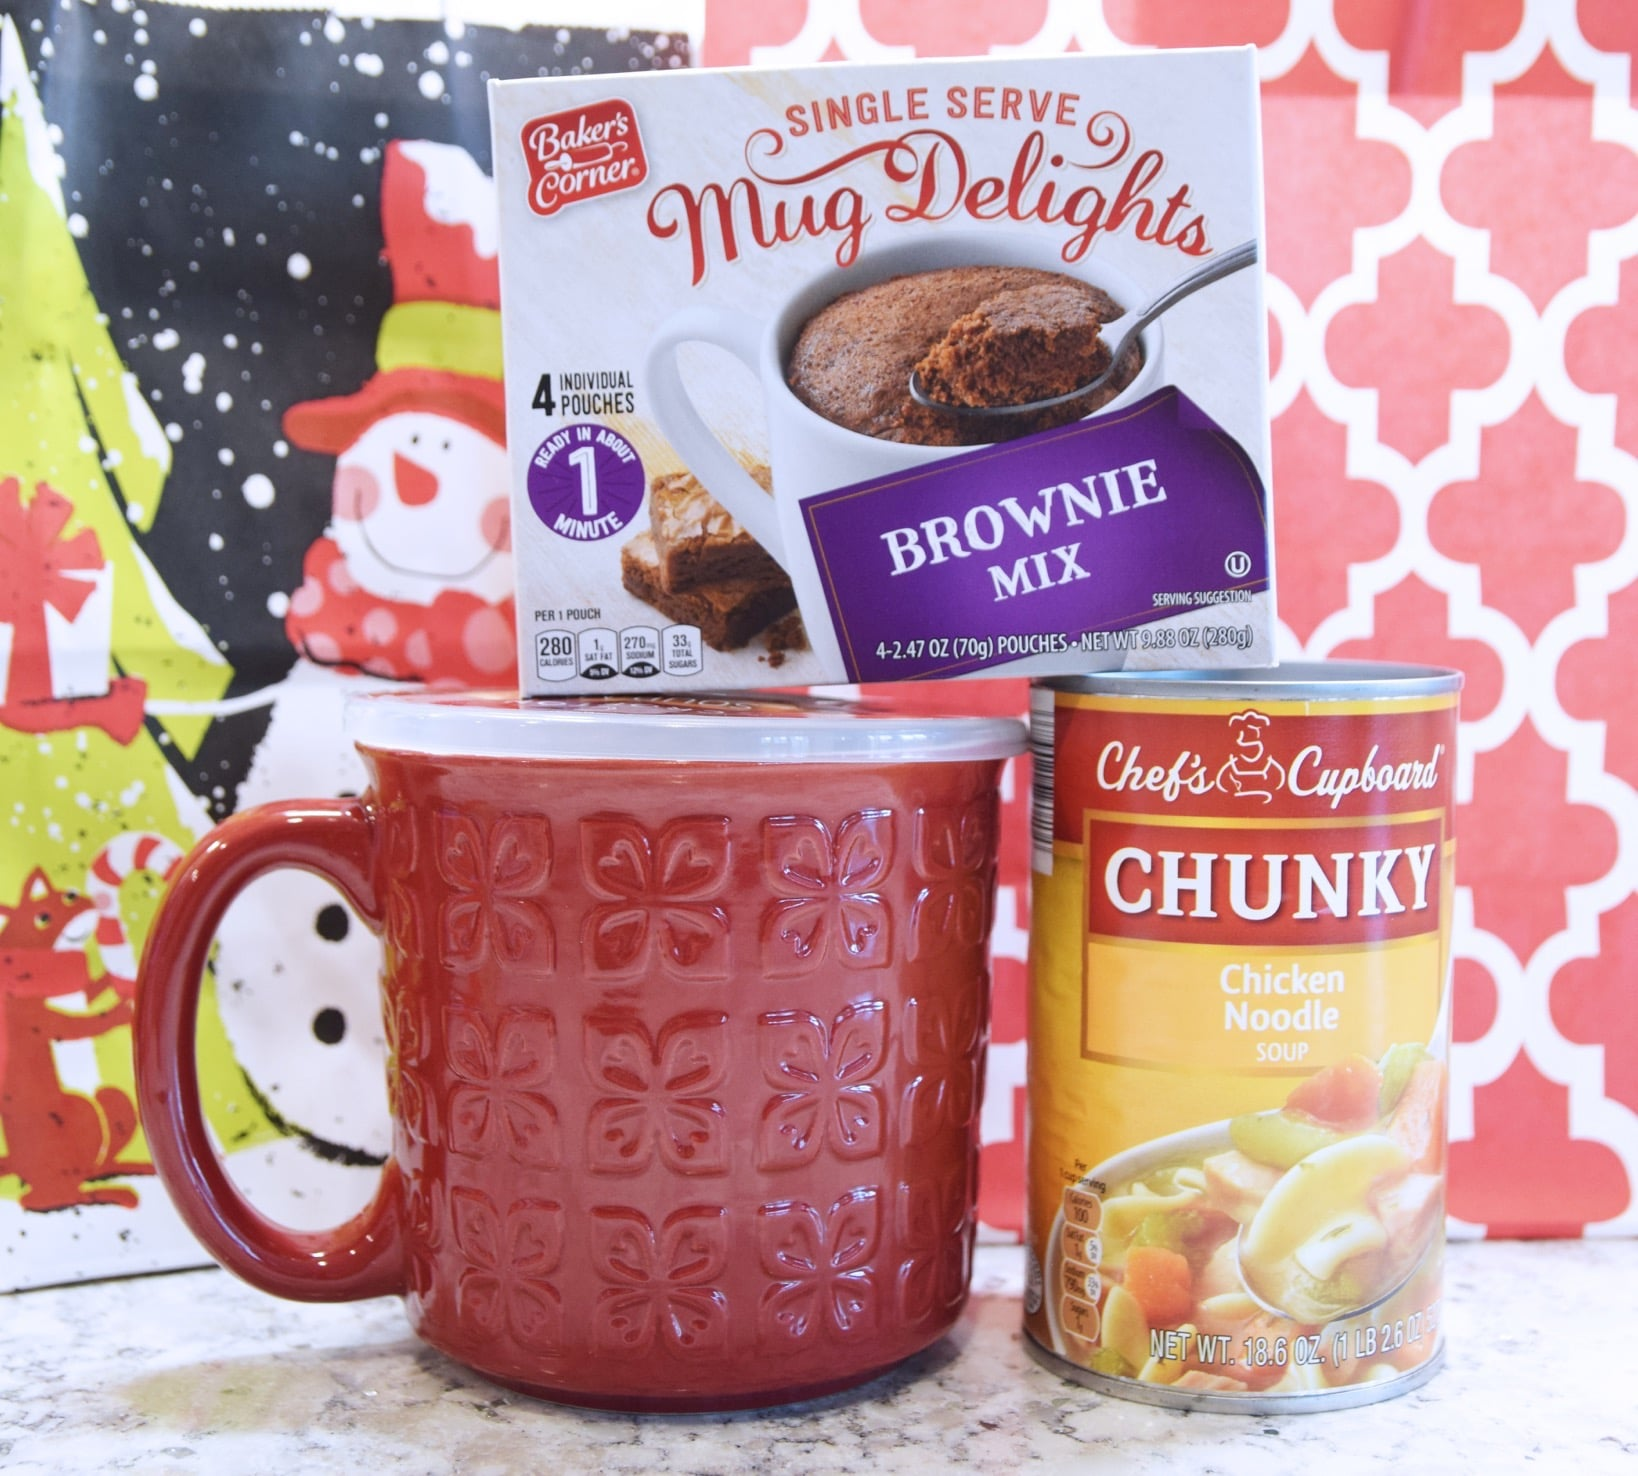 Soup mug and brownie mix